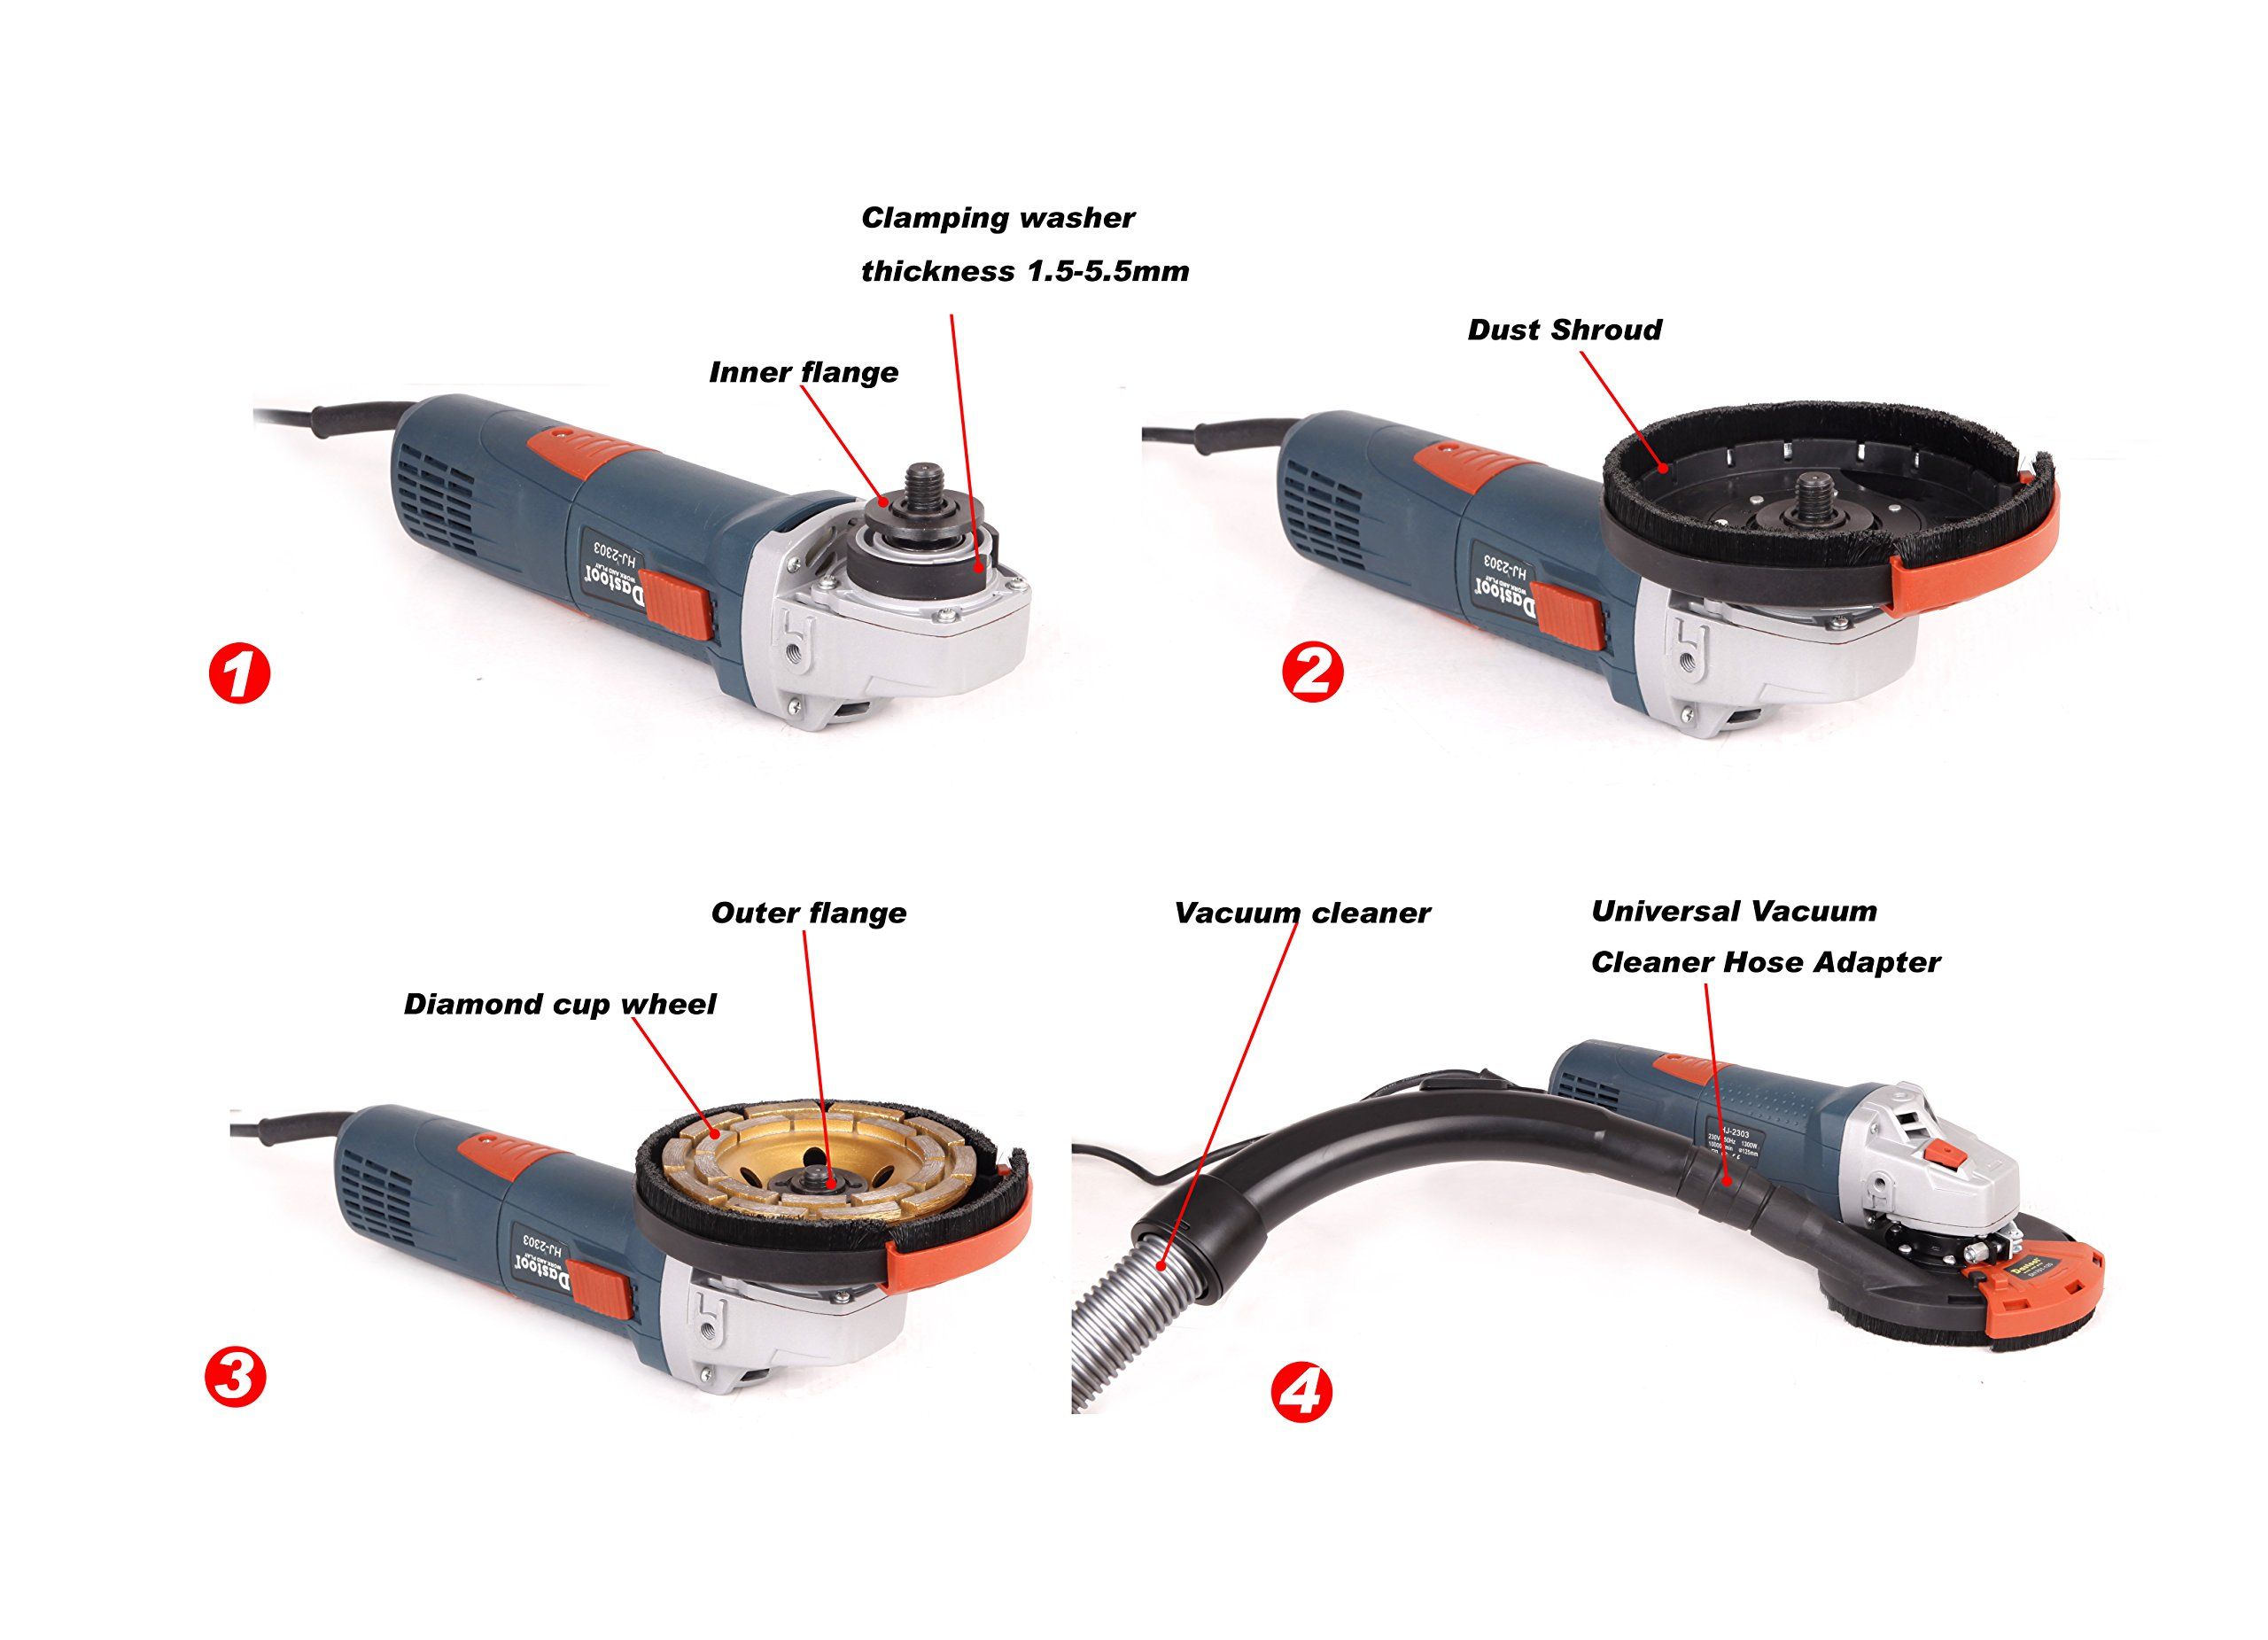 Dastool Expert Surface Grinding Dust Shroud for Angle Grinder,Universal 5-Inch Dt1701-125 by Dastool (Image #4)